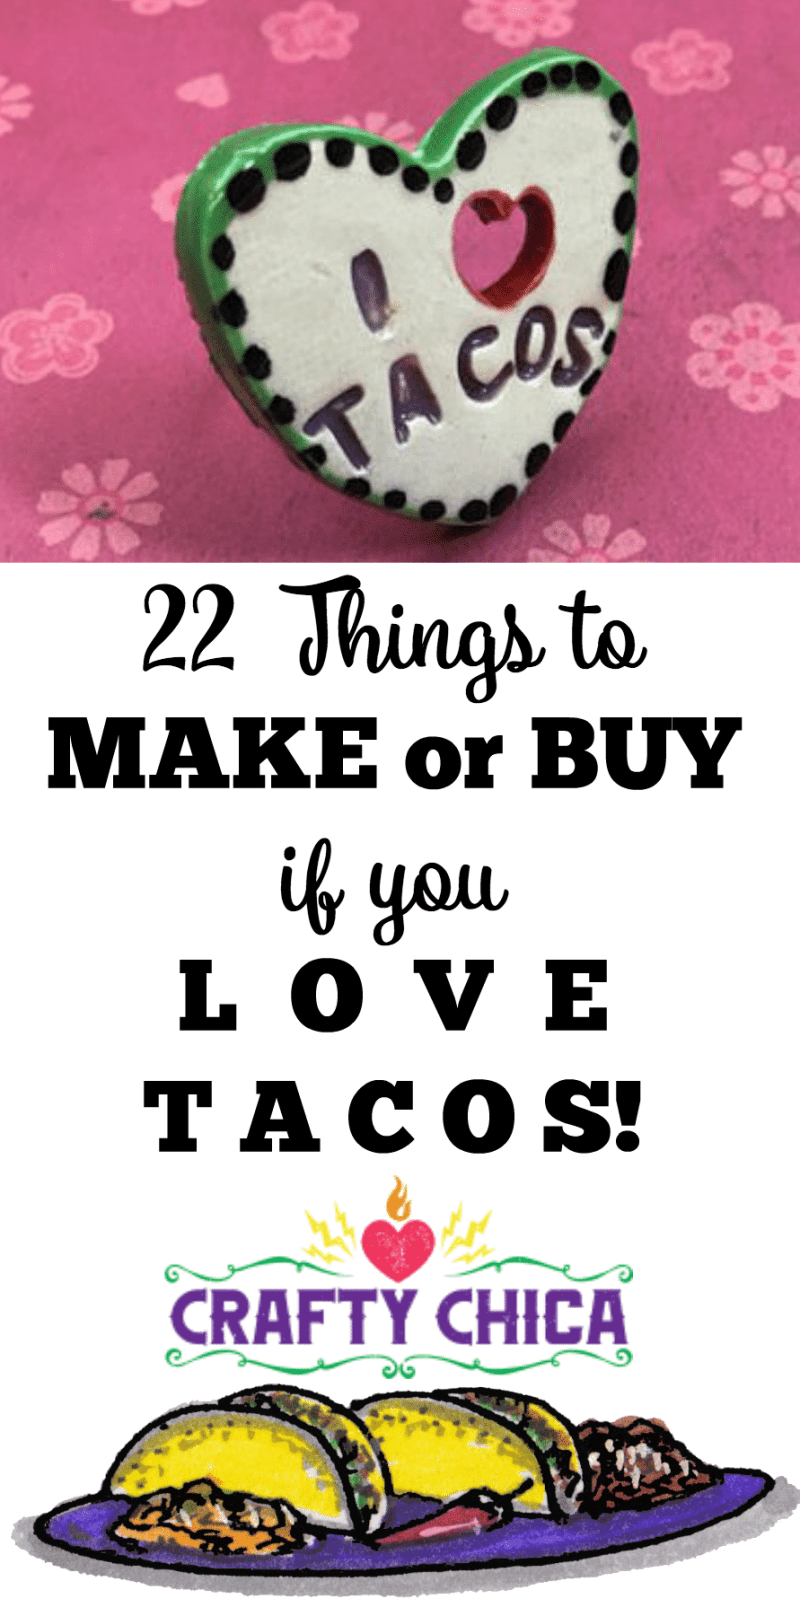 taco-crafts-diy